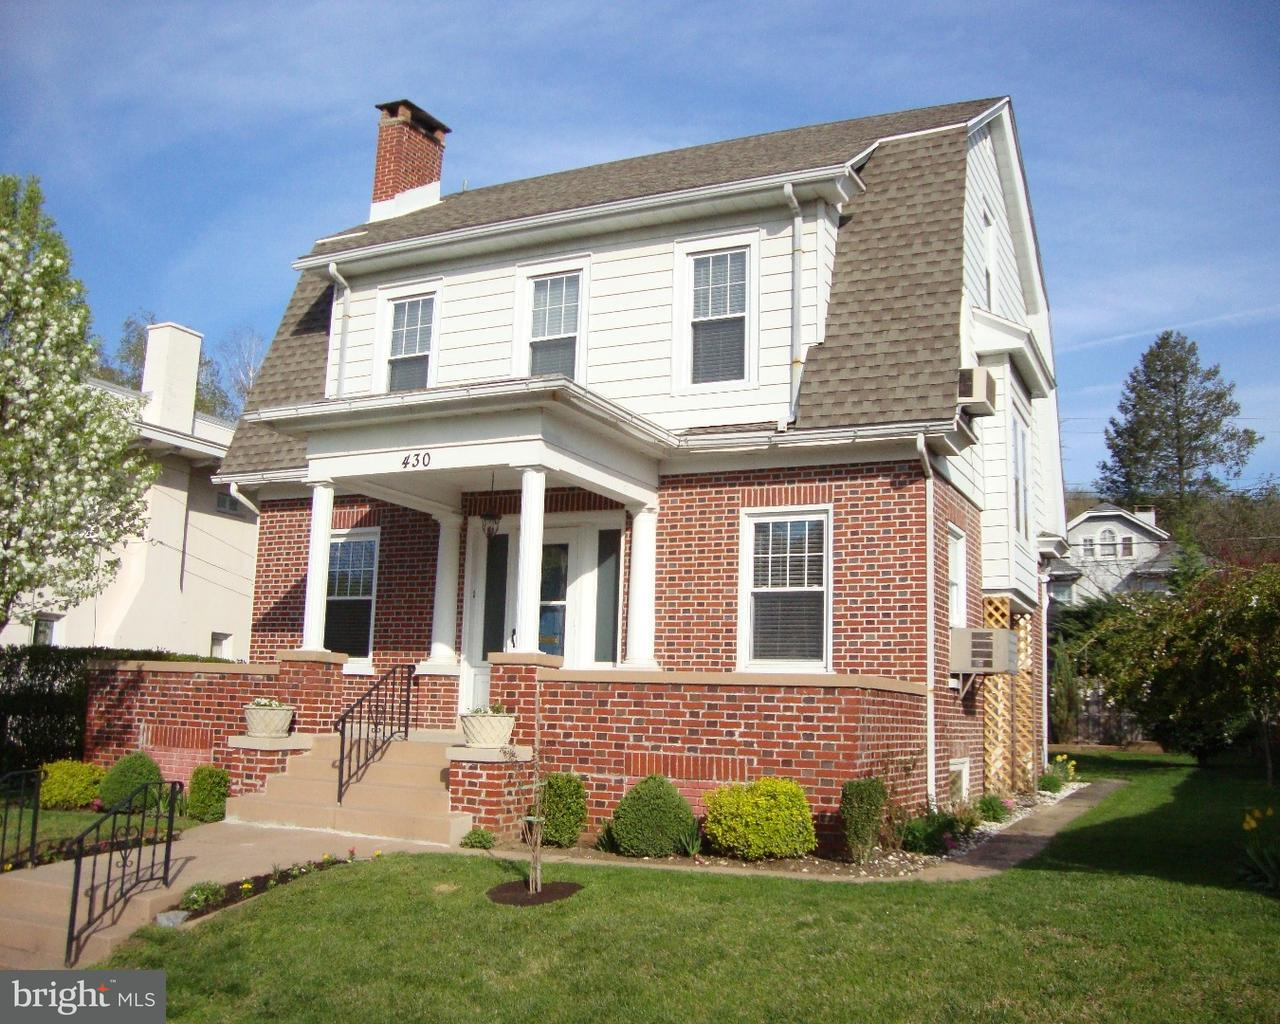 430 N 25TH ST, READING - Listed at $1,350, READING